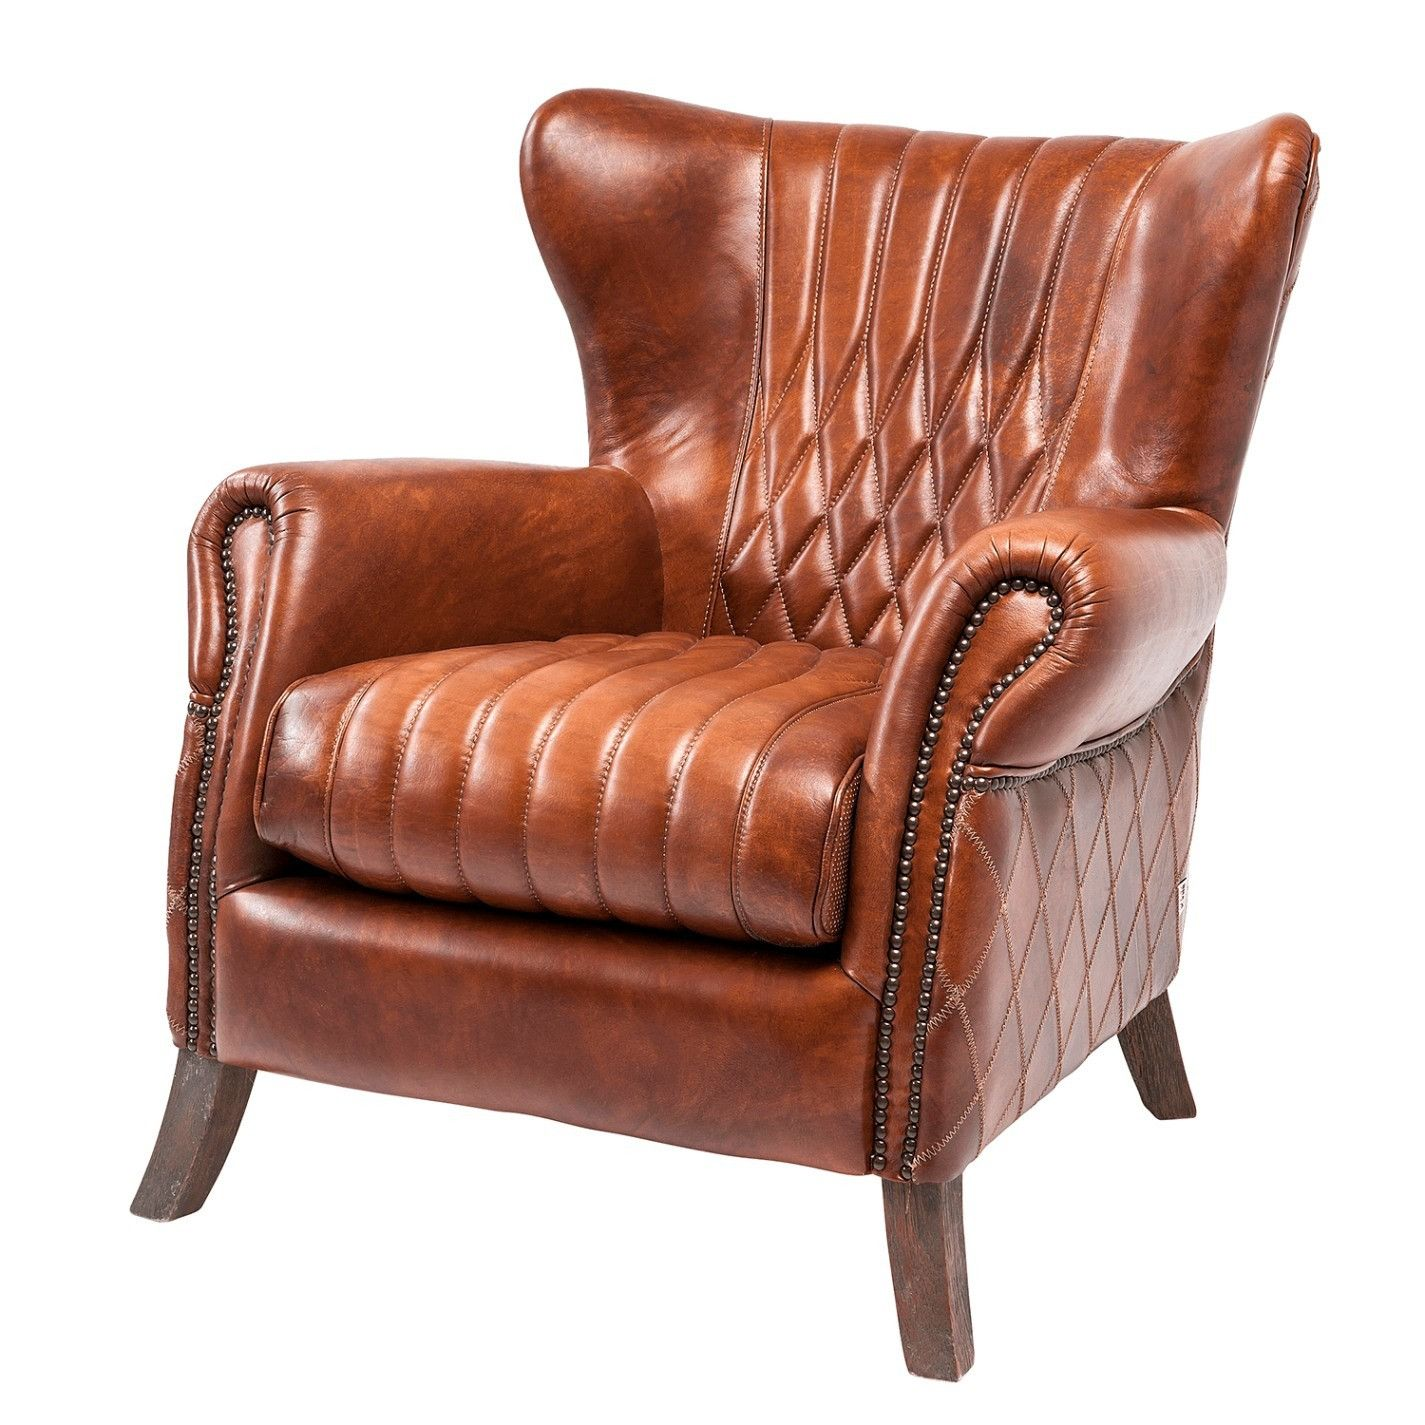 Majestatisch Sessel Mit Bettfunktion In 2020 Brown Wicker Patio Furniture Patio Lounge Chairs Patio Chair Cushions